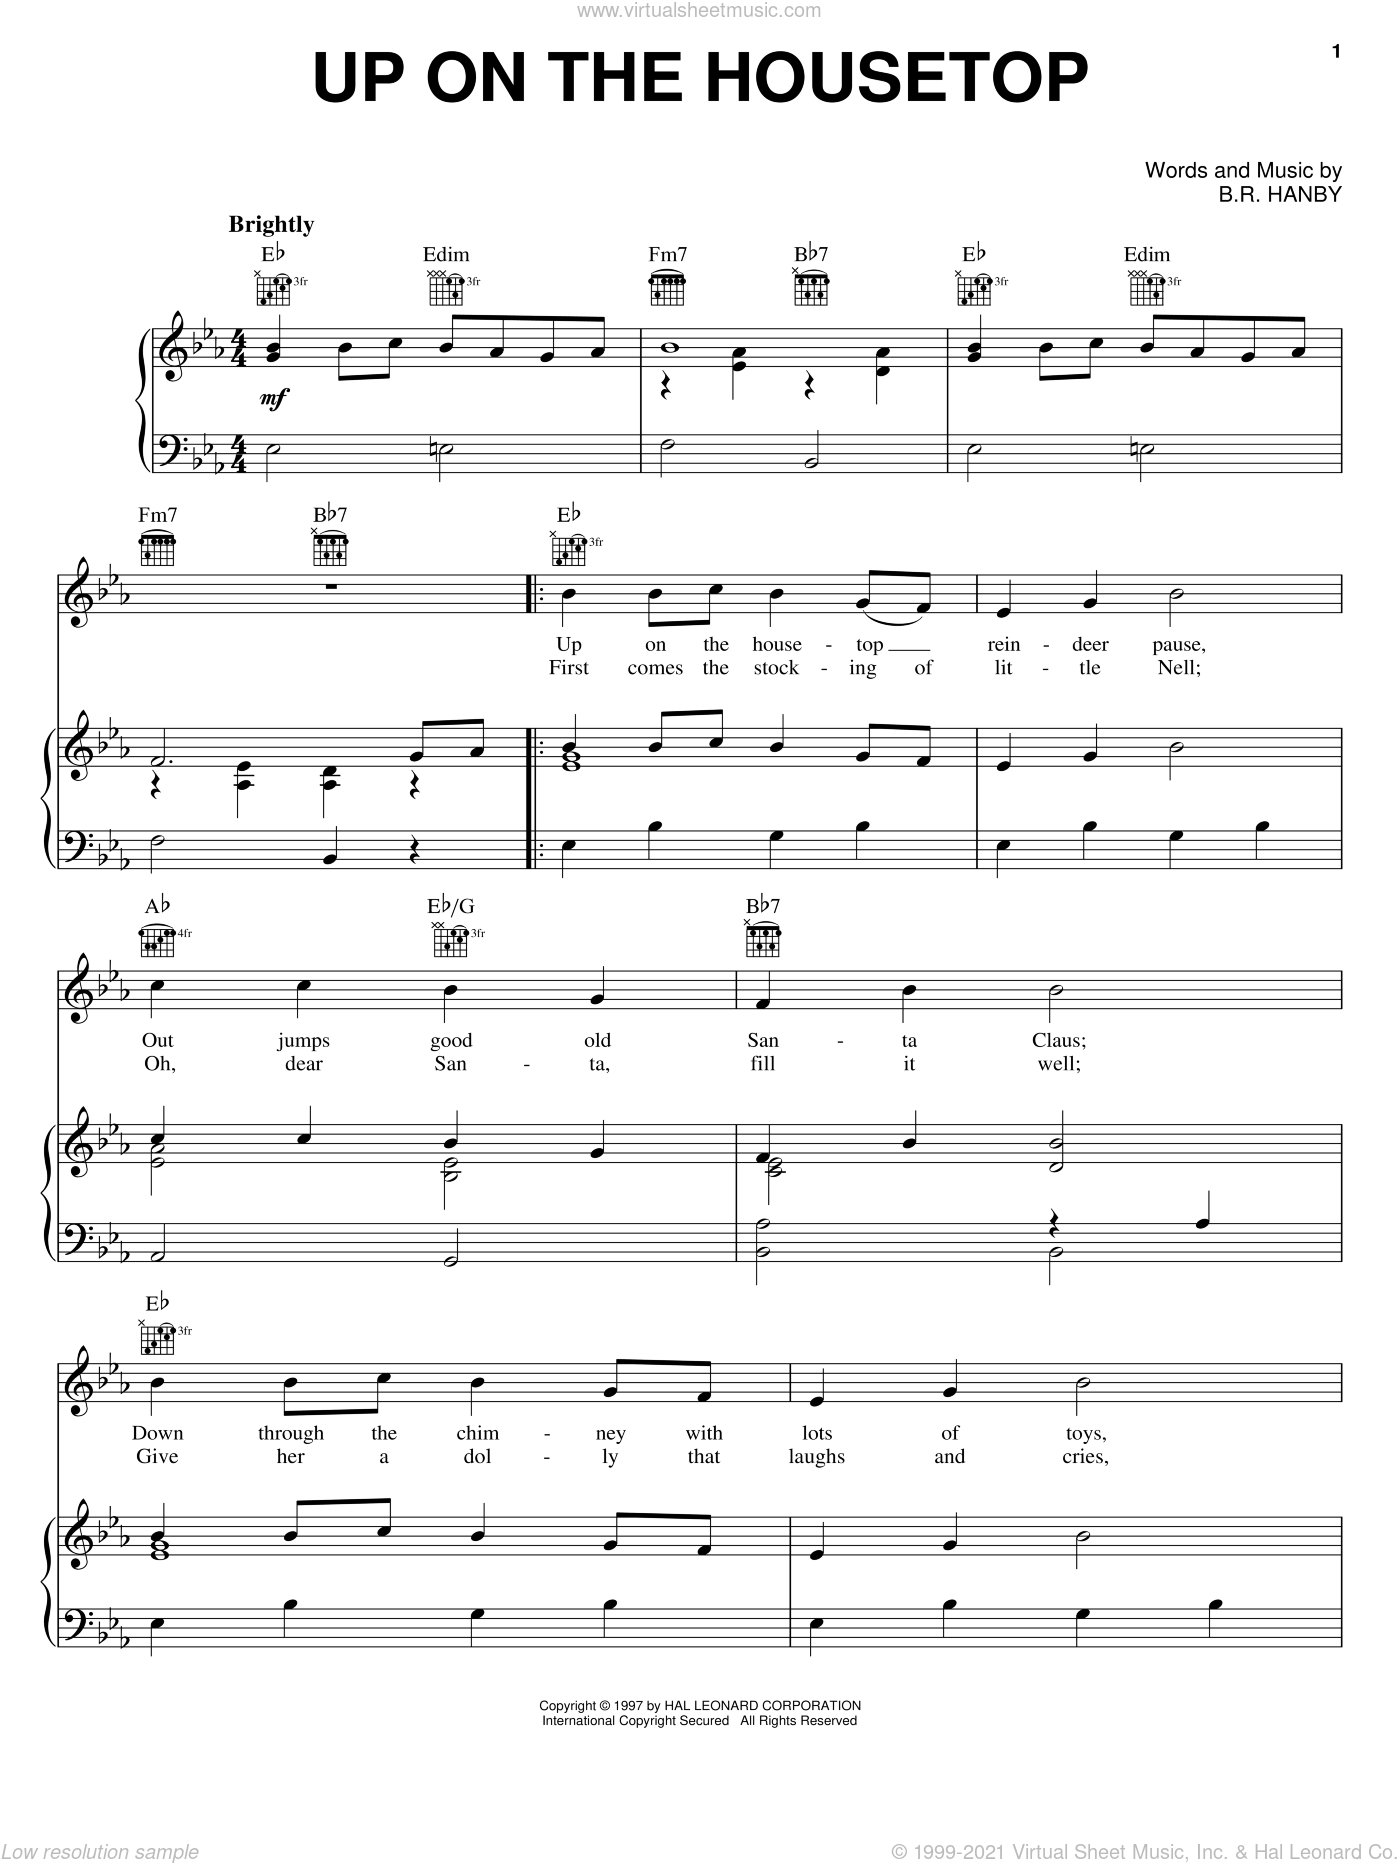 Up On The Housetop sheet music for voice, piano or guitar by Benjamin Hanby, intermediate skill level